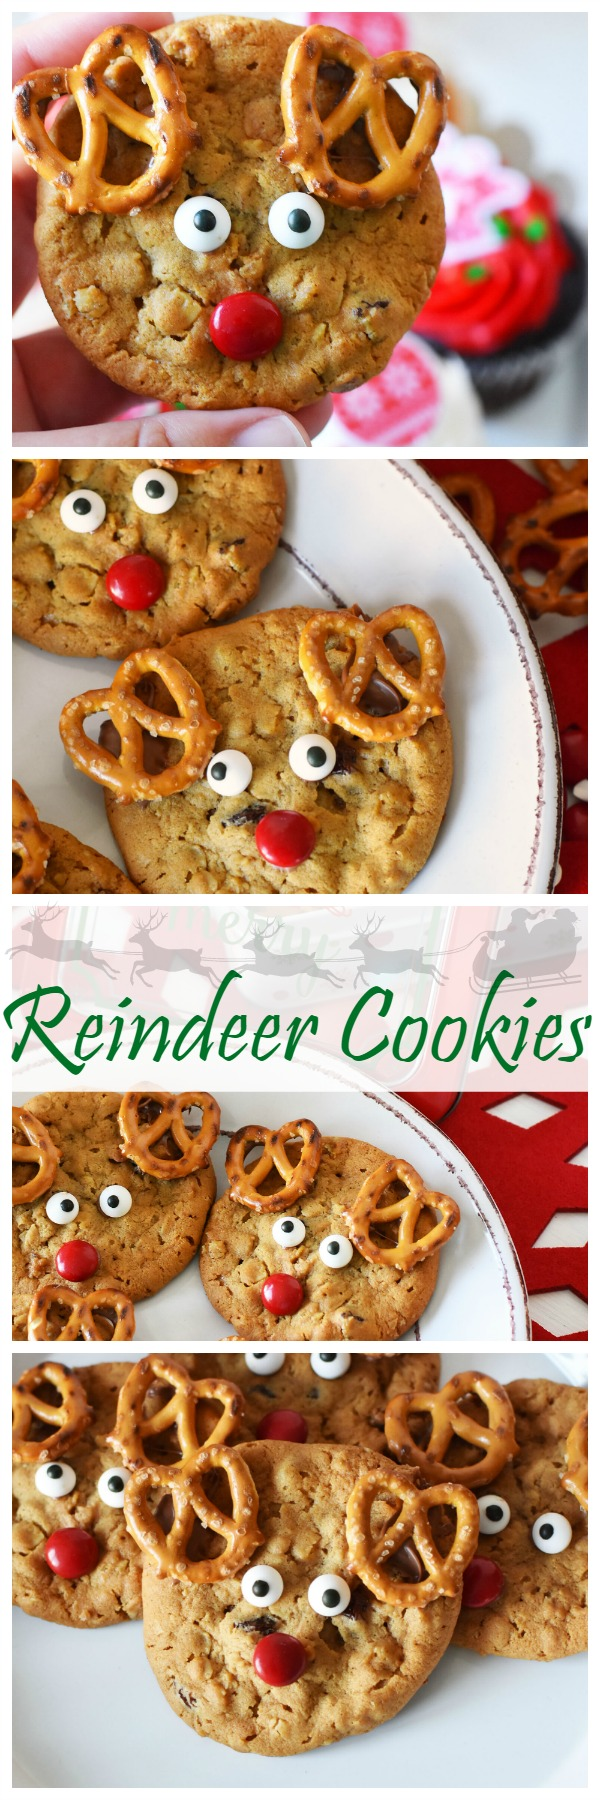 semi-homemade-reindeer-cookies